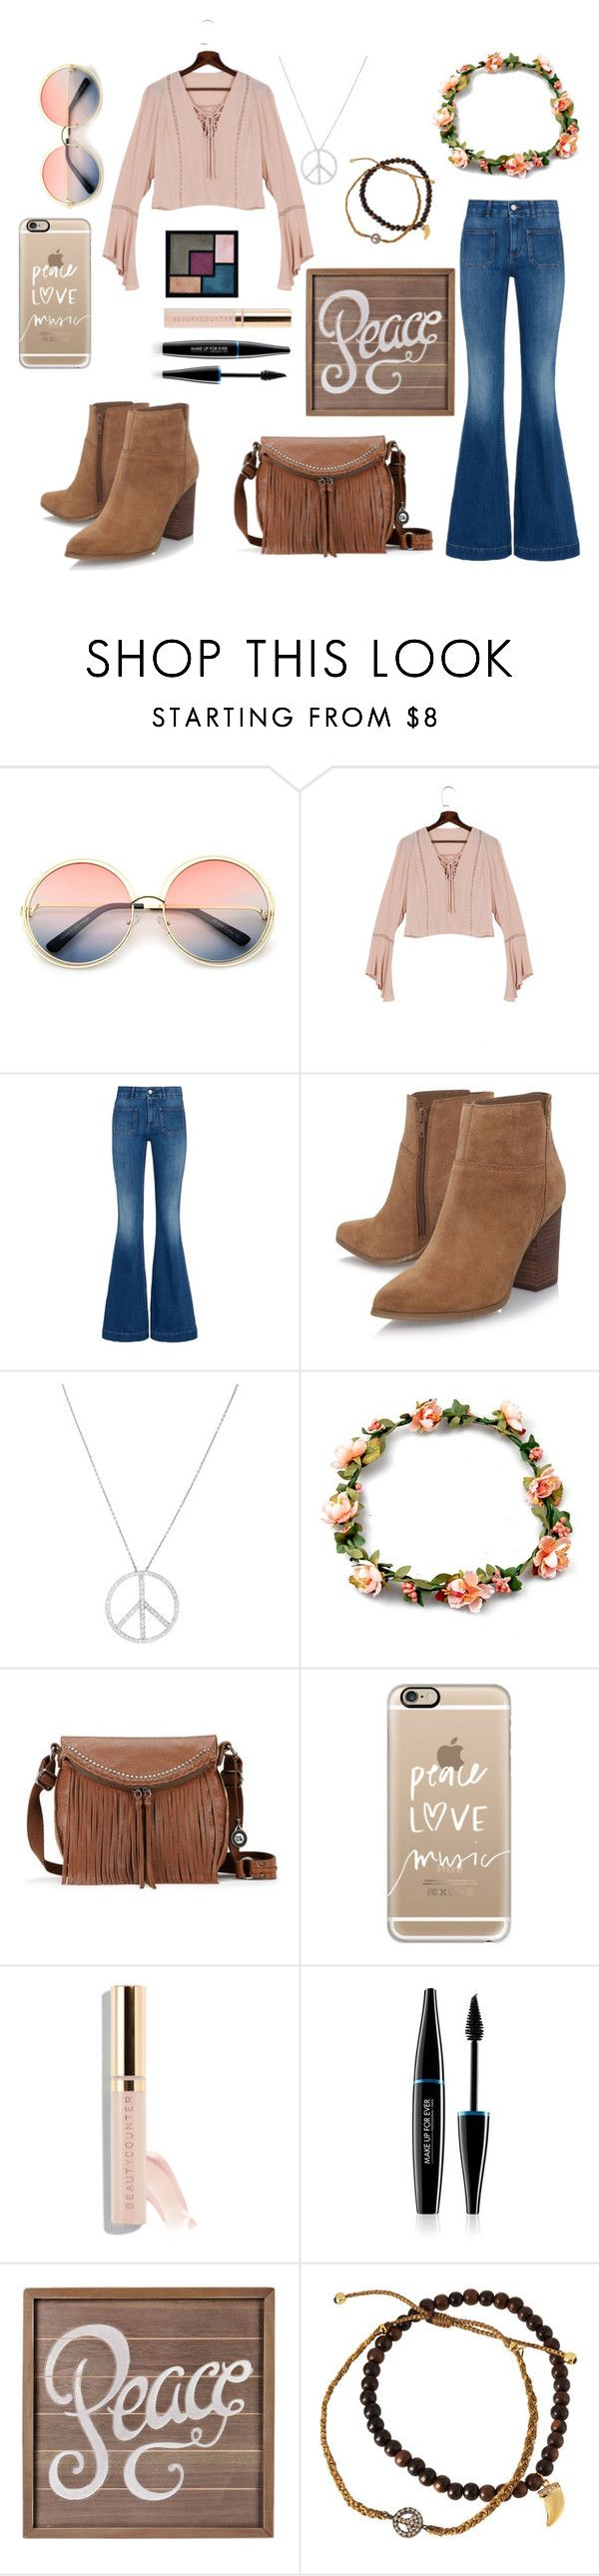 """Hippies Costume"" by rymae27 ❤ liked on Polyvore featuring ZeroUV, STELLA McCARTNEY, Nine West, Roberto Coin, The Sak, Yves Saint Laurent, Casetify, Beautycounter, MAKE UP FOR EVER and Tai"